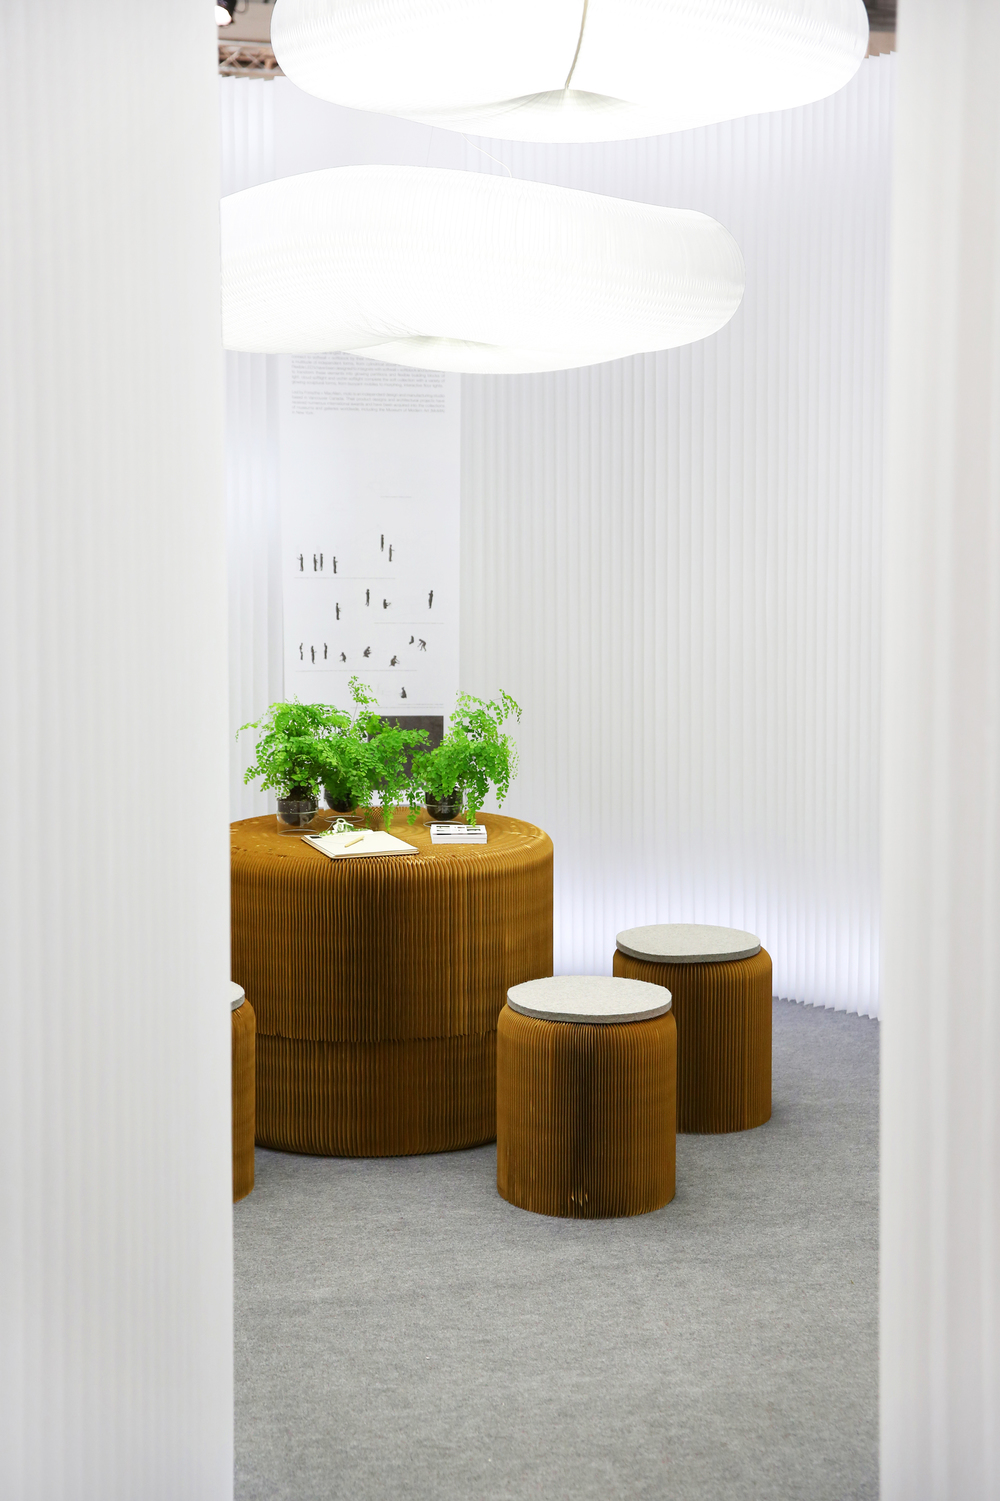 Molo_fanning paper stools + white softwall.jpg